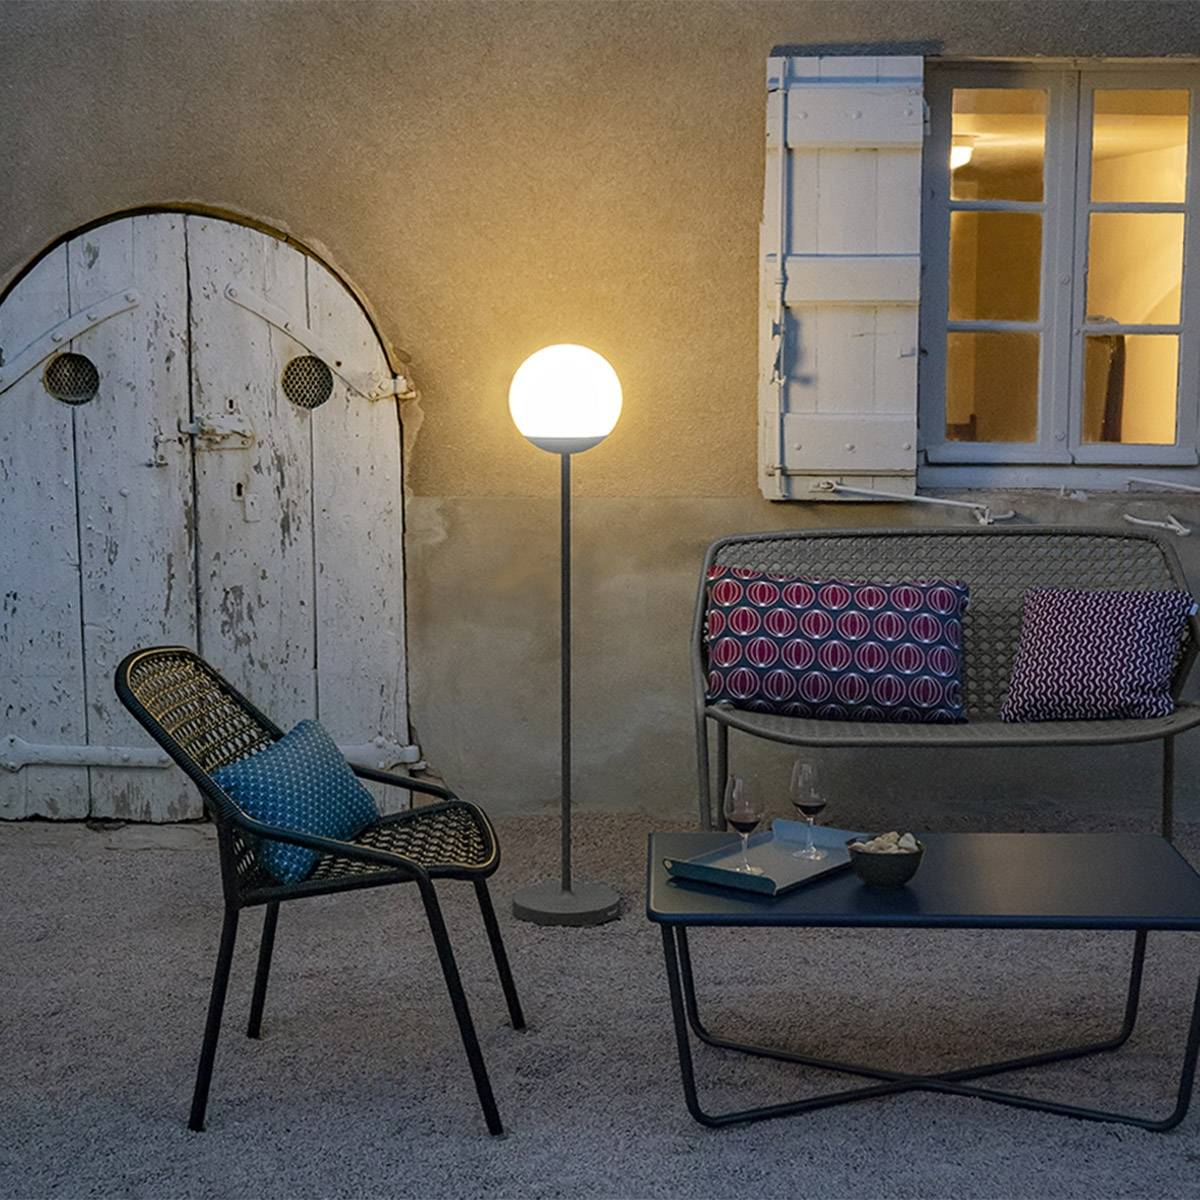 Fermob Mooon Floor Lamp 134 Cm Outdoor Lighting Jardin Nz